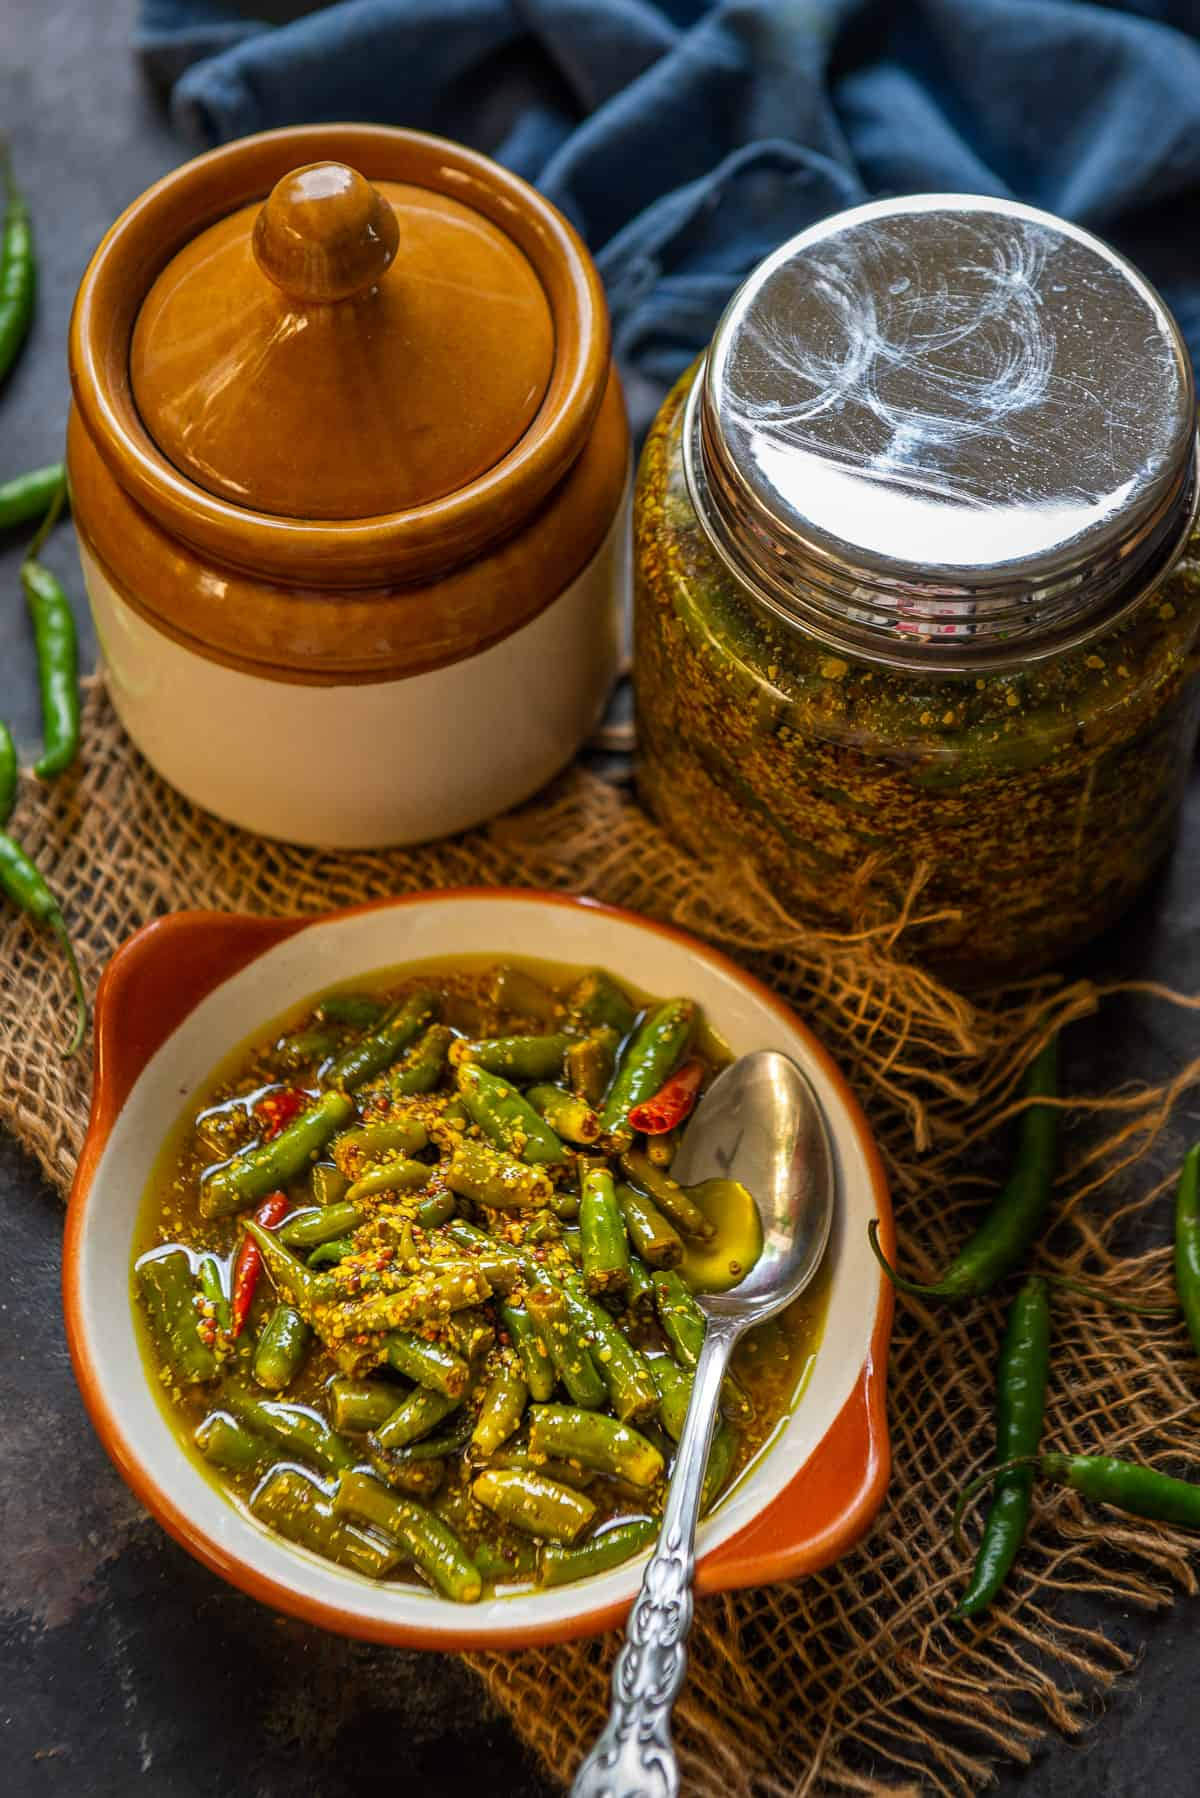 Green chilli pickle served in a bowl.